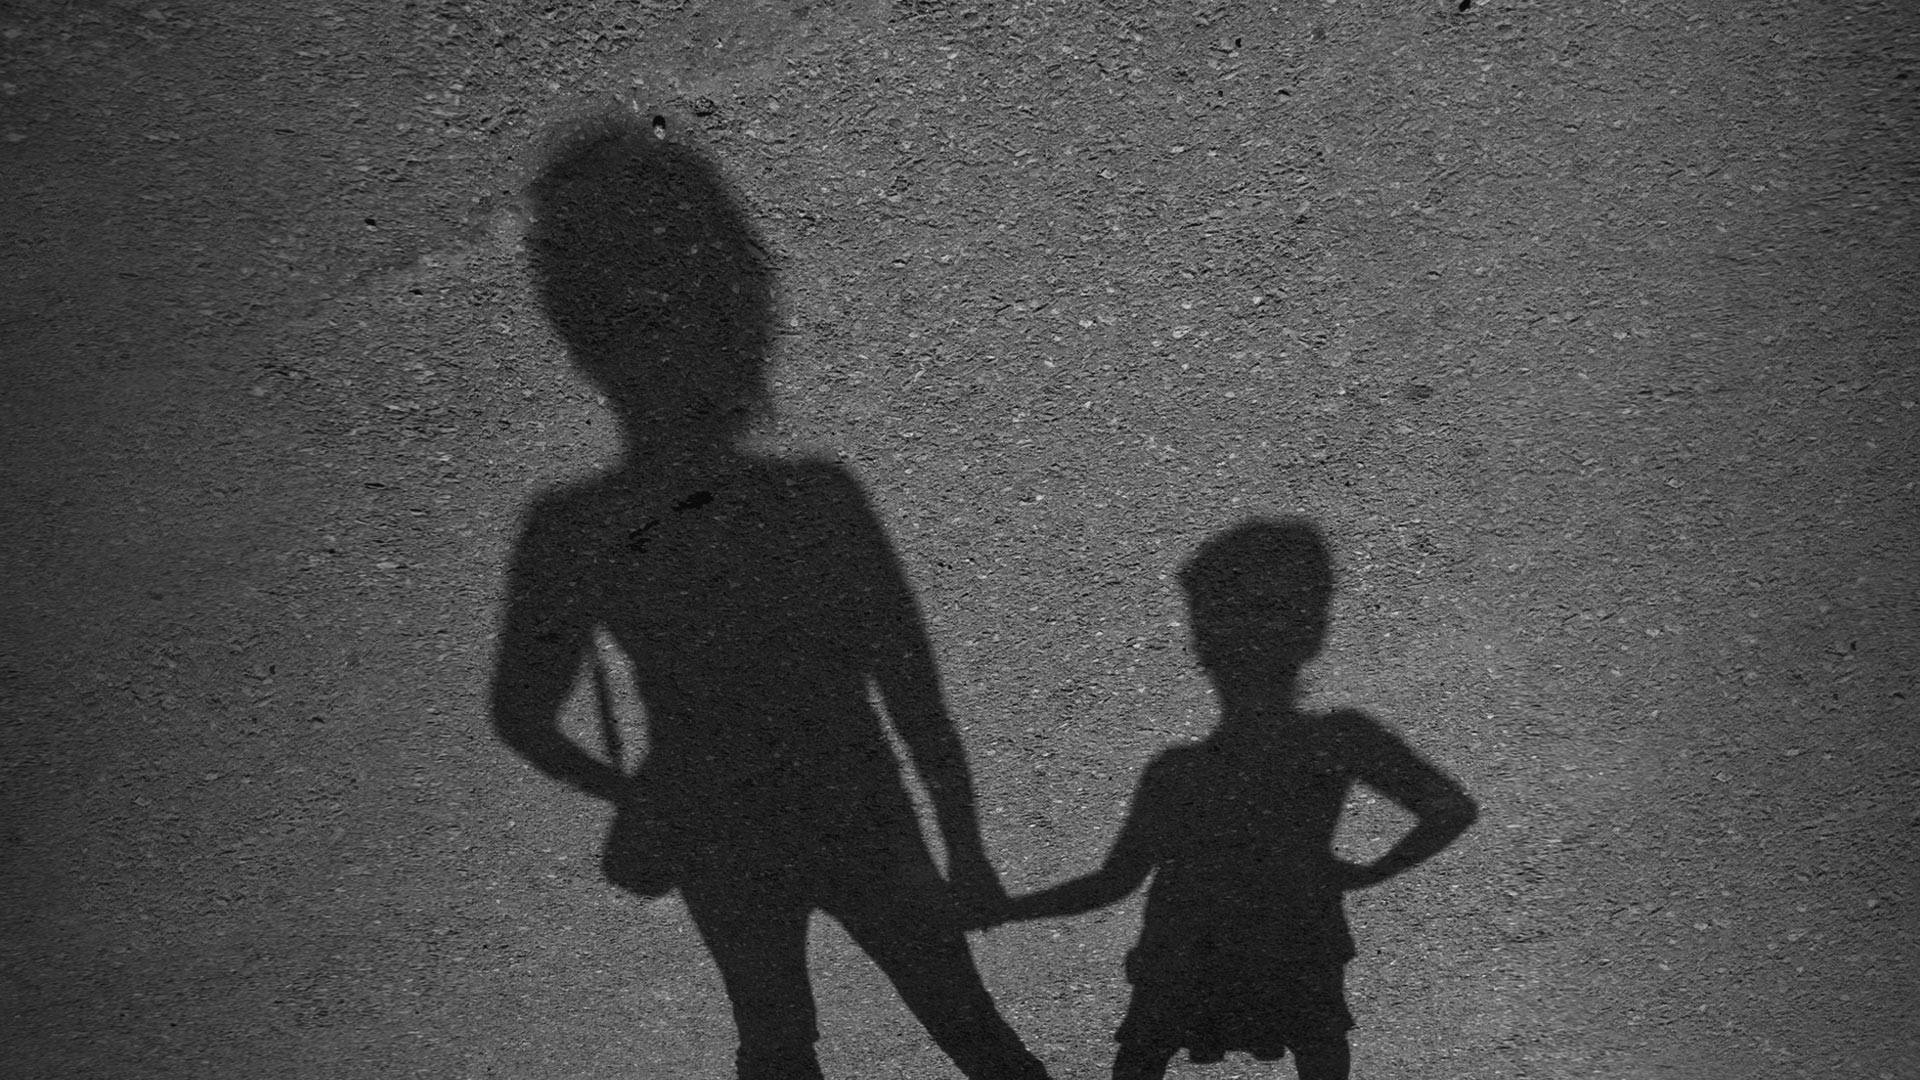 Mother and daughter shadows